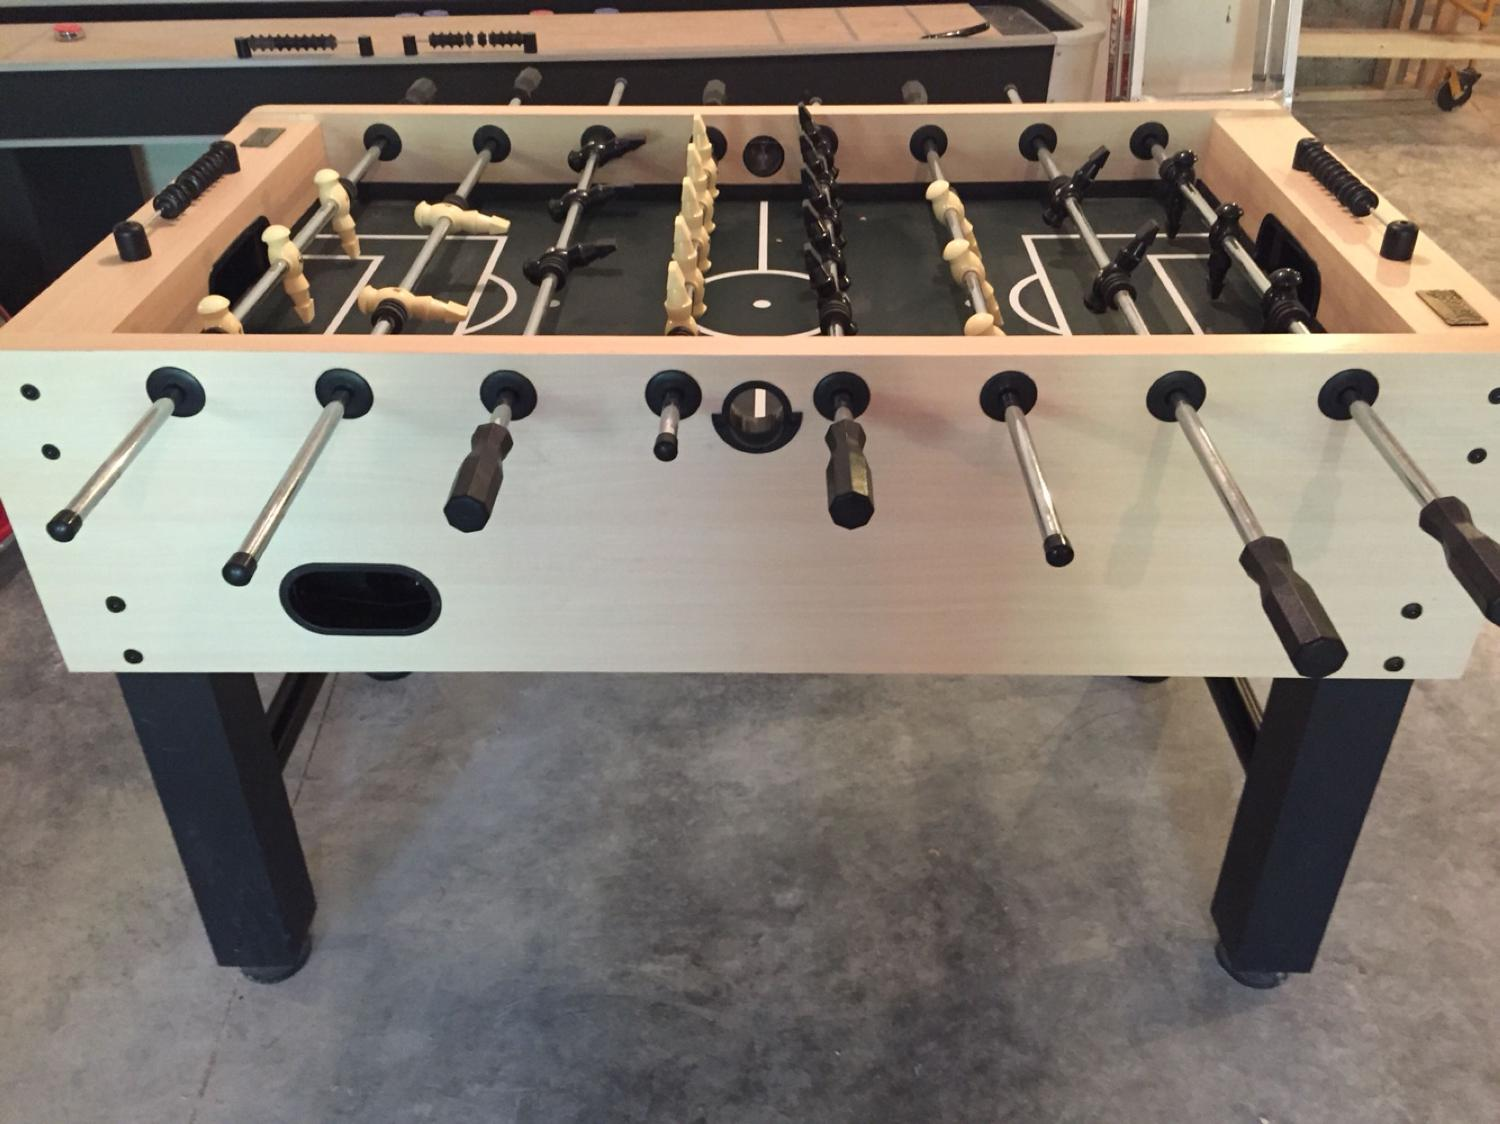 Find More Newcastle Foosball Table For Sale At Up To Off - Newcastle foosball table